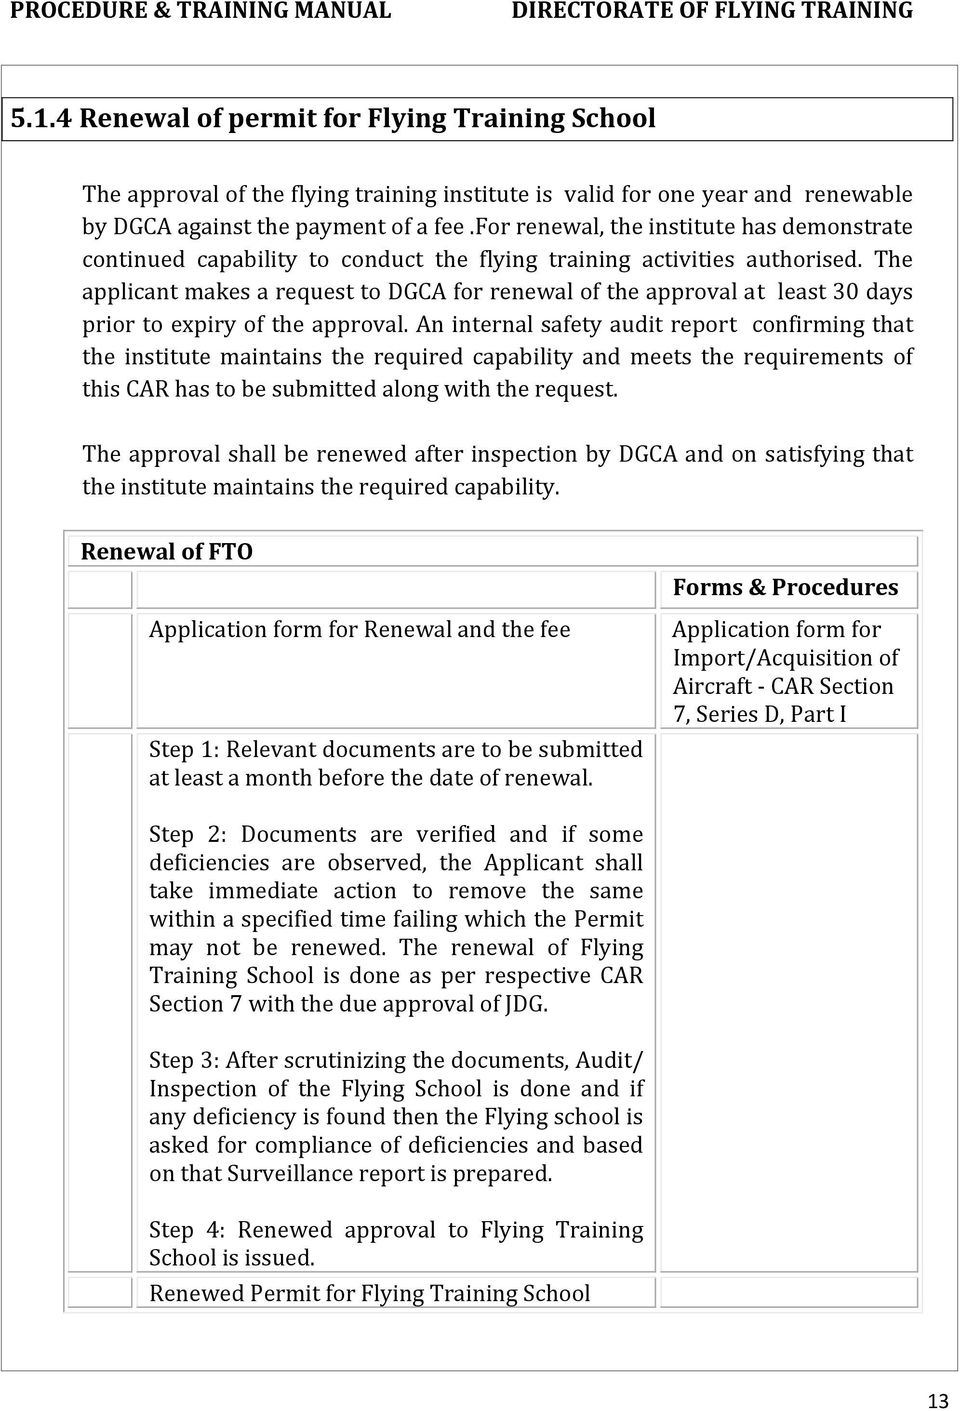 The applicant makes a request to DGCA for renewal of the approval at least 30 days prior to expiry of the approval.